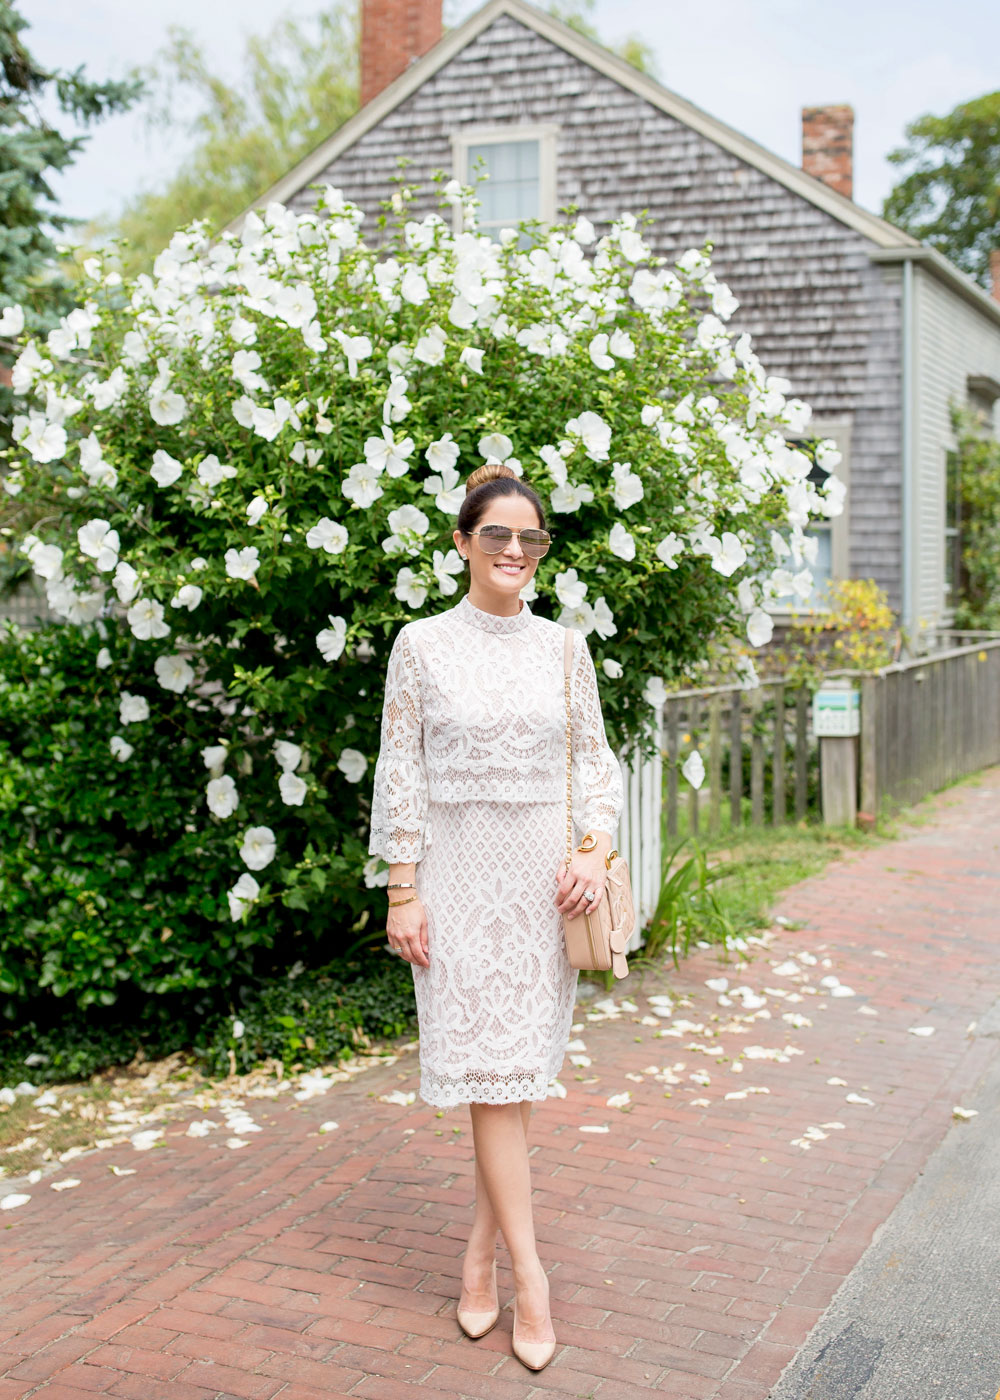 Affordable White Lace Dress